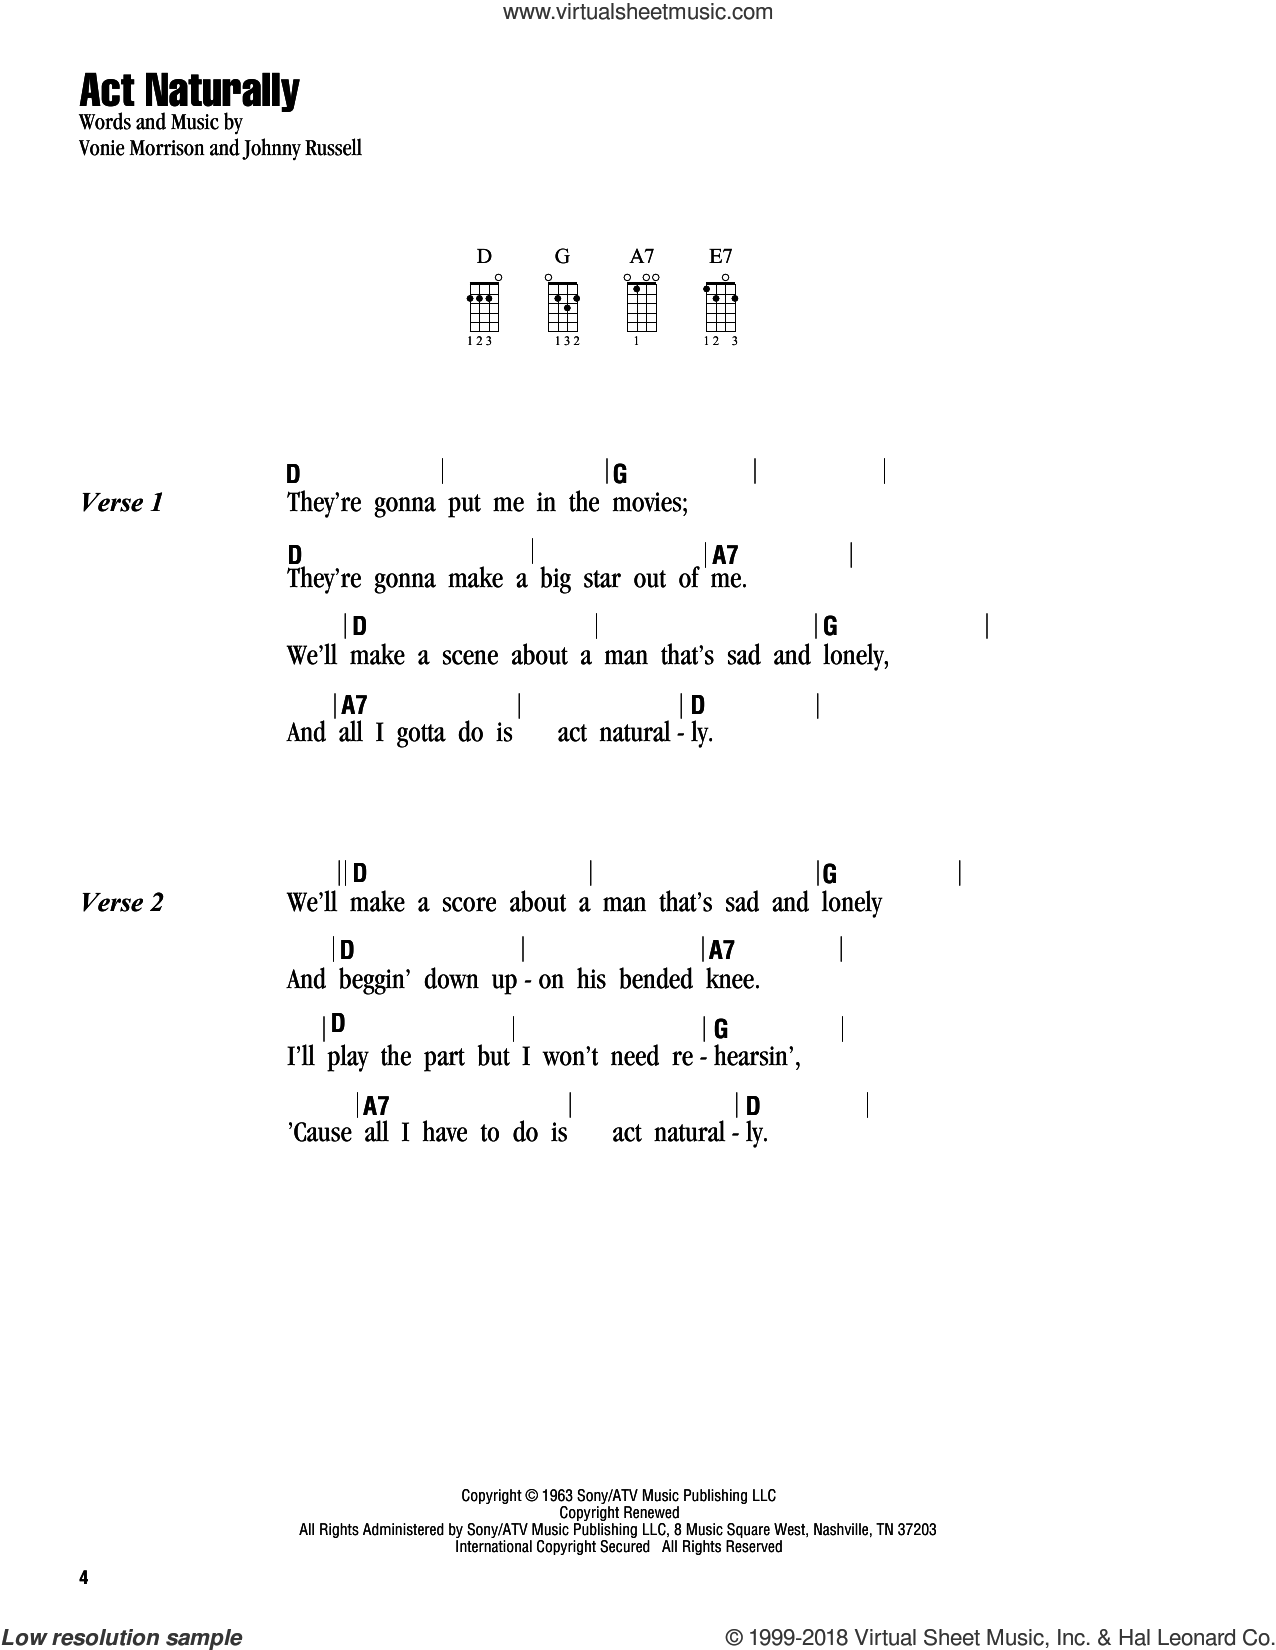 Act Naturally sheet music for ukulele (chords) by Buck Owens, The Beatles, Johnny Russell and Vonie Morrison, intermediate skill level